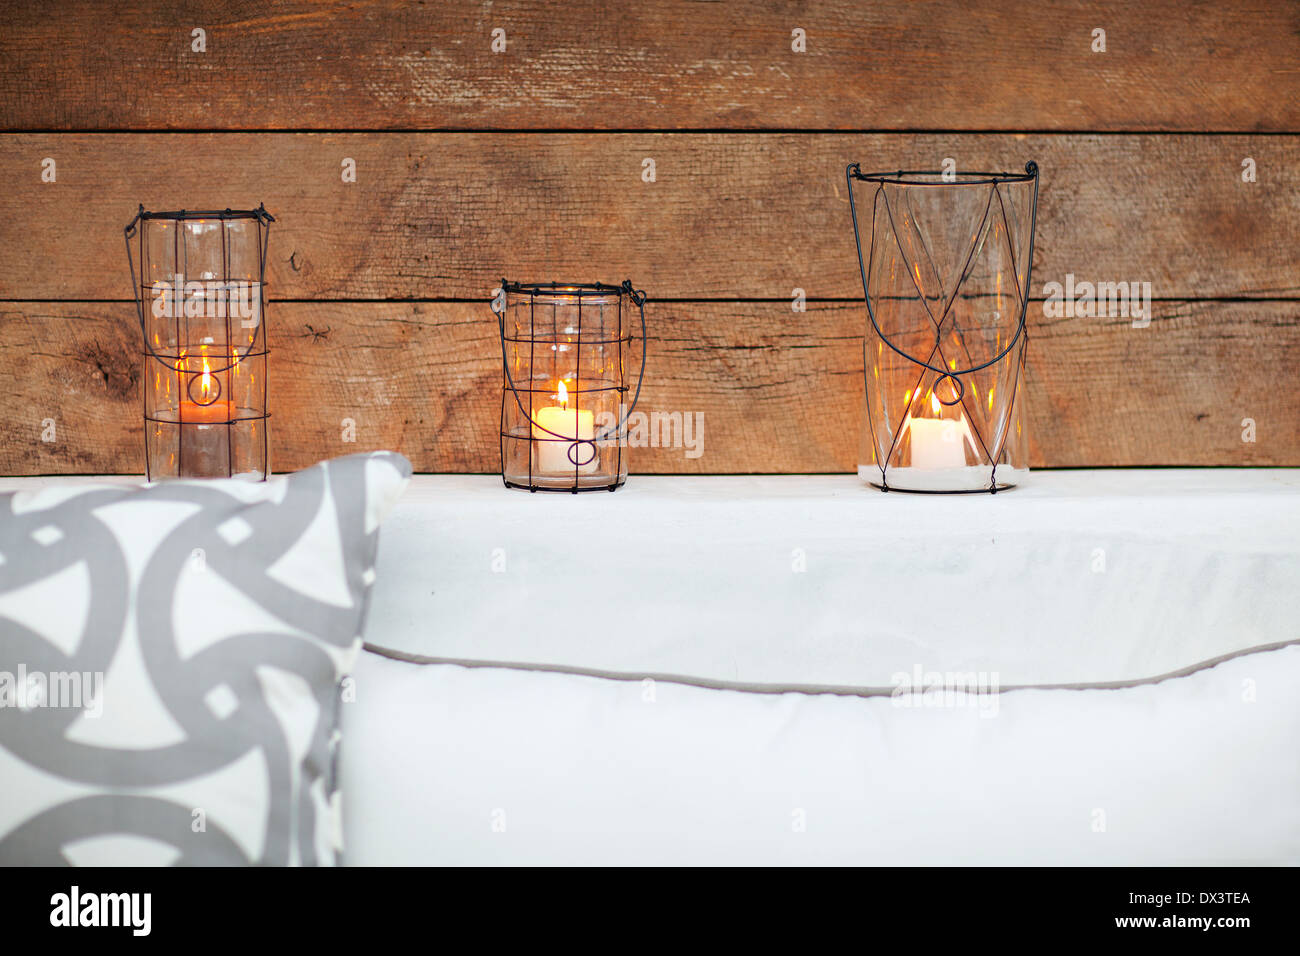 Candles illuminated in lanterns on patio ledge Stock Photo